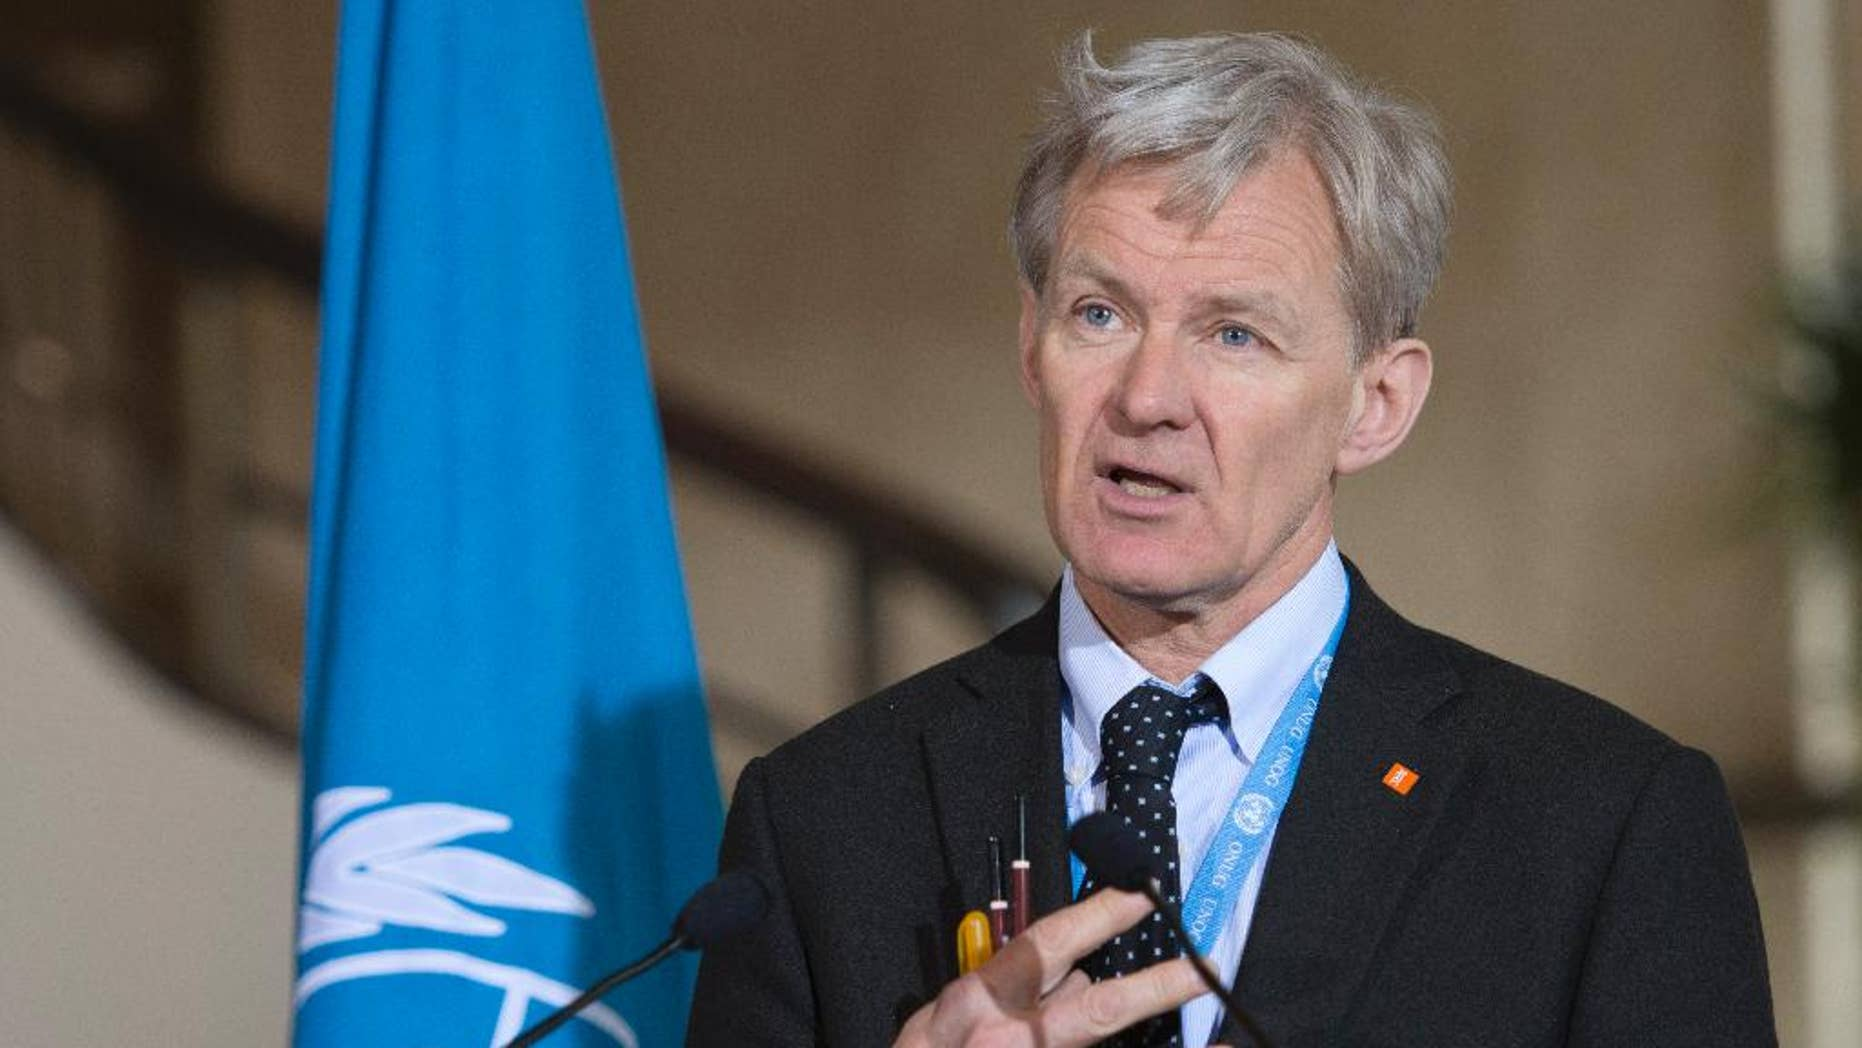 Jan Egeland, Senior Advisor to the United Nations Special Envoy for Syria, speaks about the International Syria Support Group's Humanitarian Access Task Force update at the European headquarters of the United Nations in Geneva, Switzerland, Thursday, April 7, 2016. (Martial Trezzini/Keystone via AP)